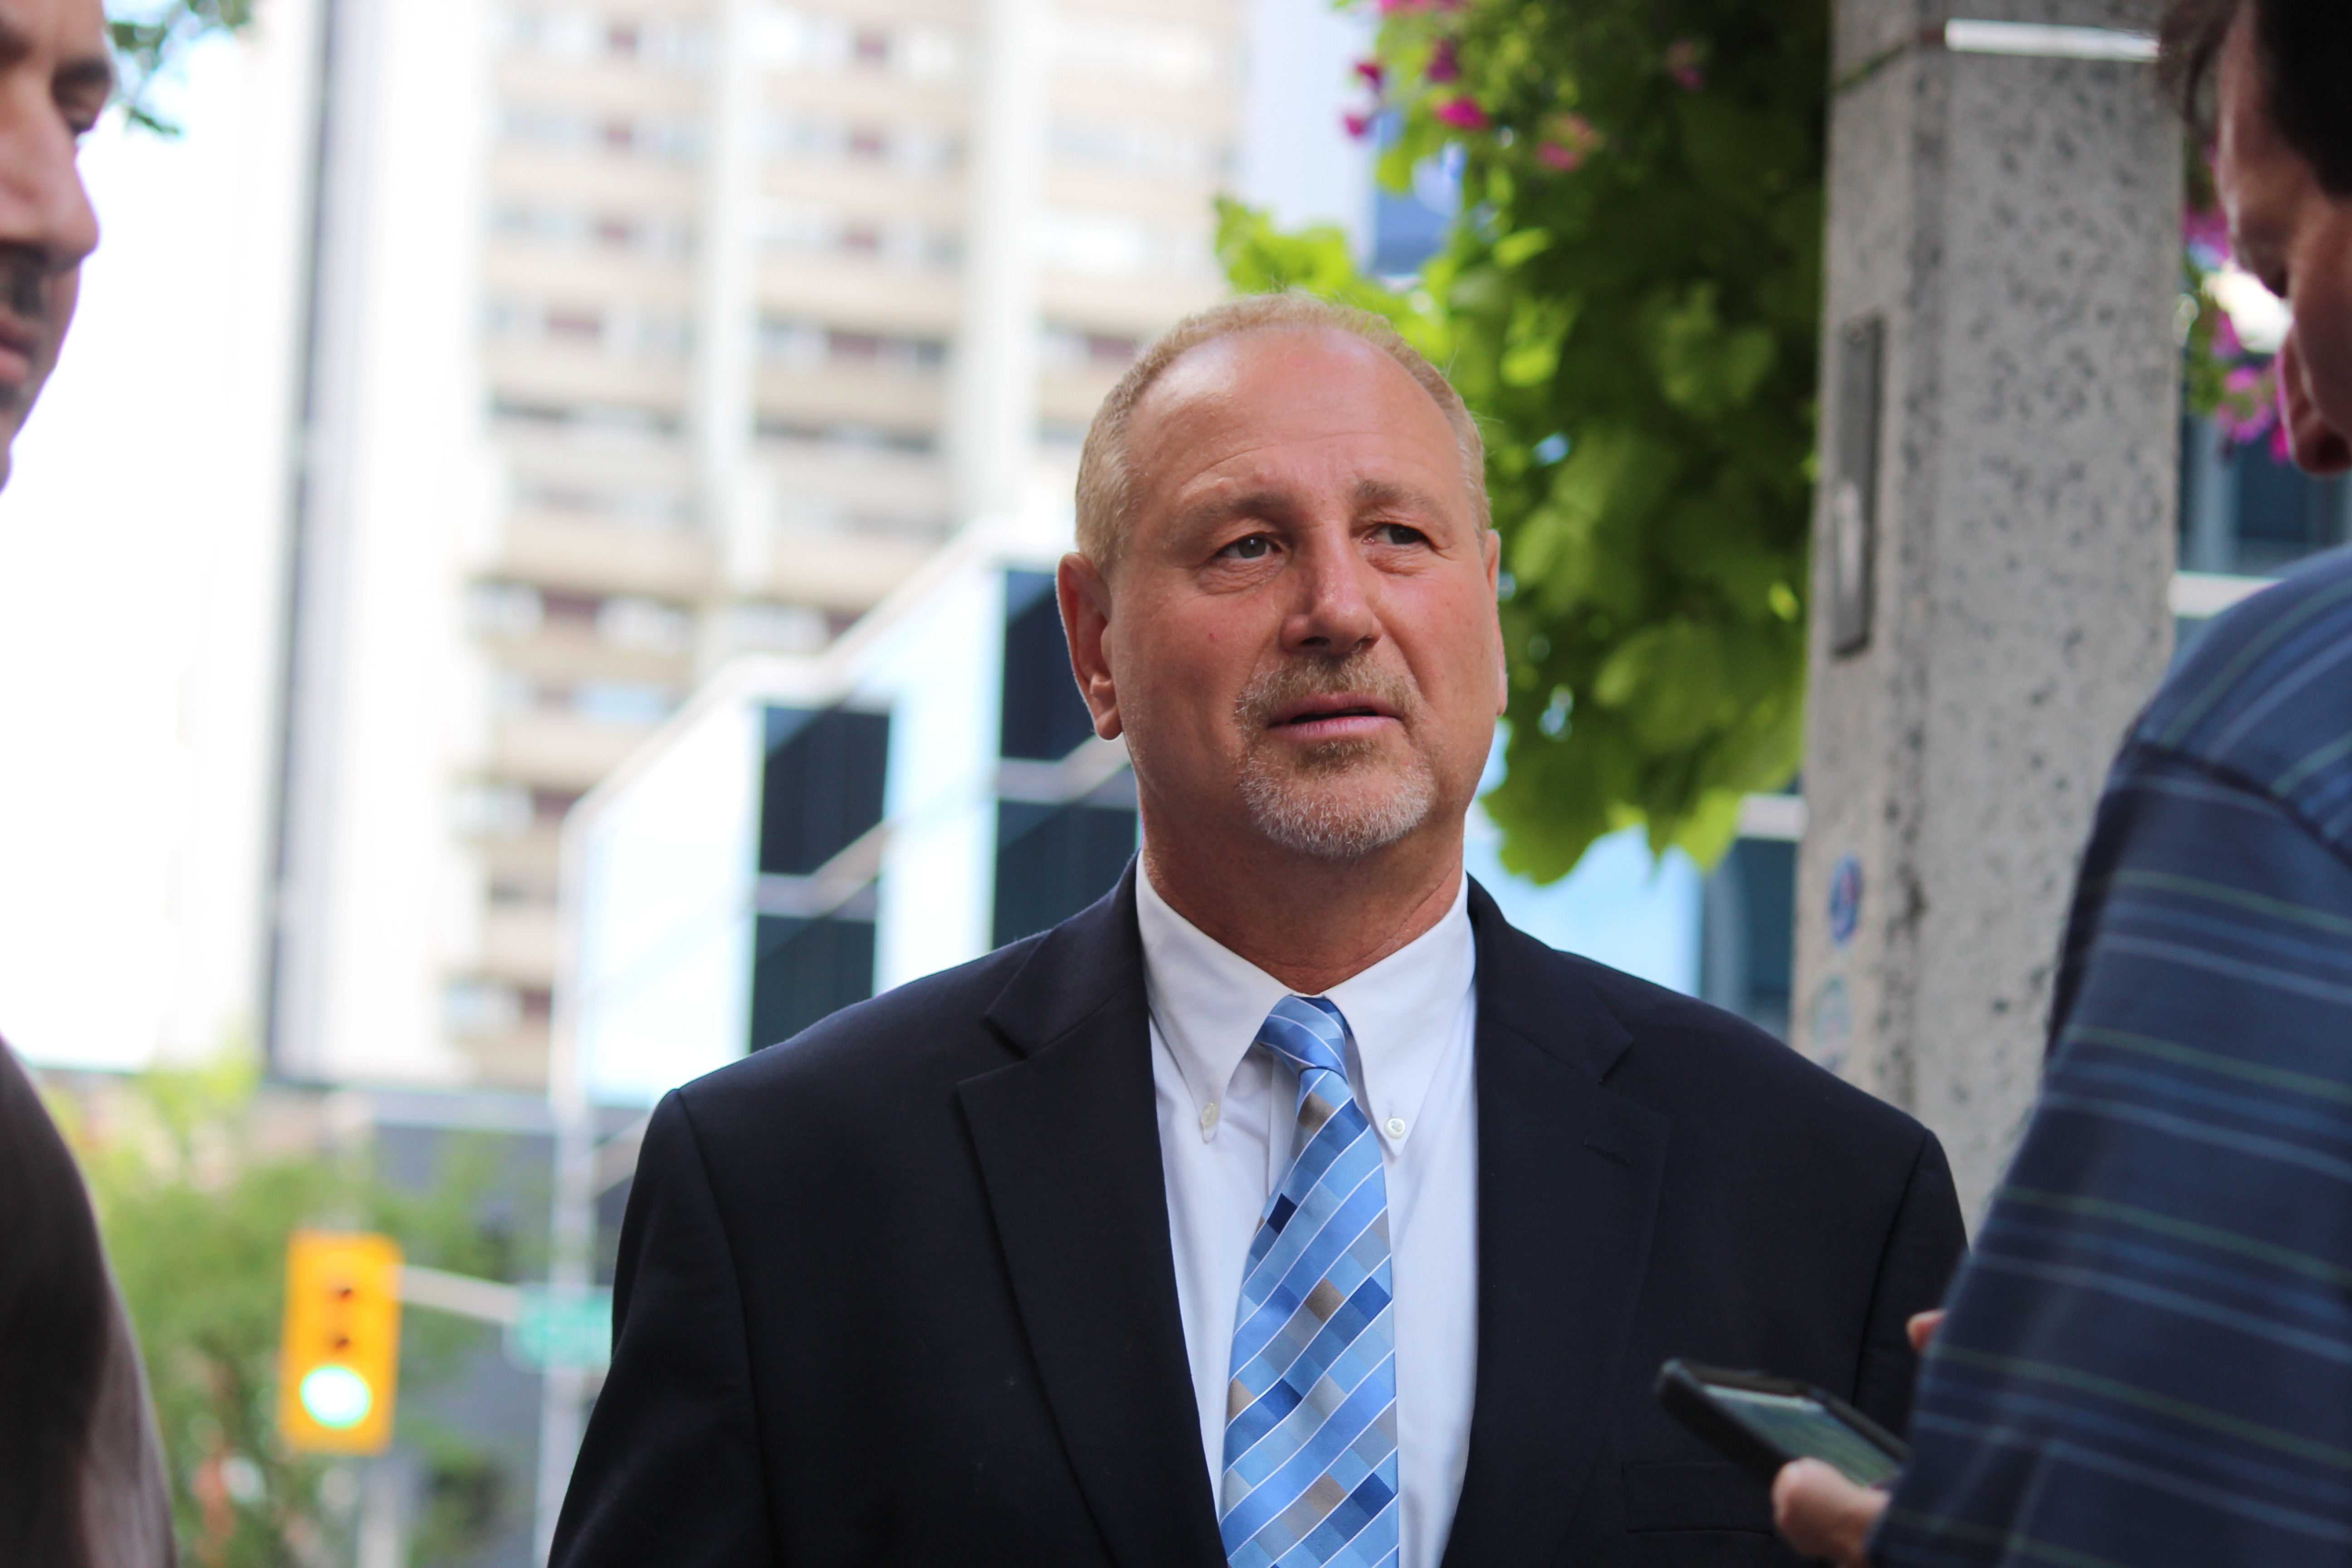 DWBIA Chair Larry Horwitz uses the backdrop of downtown Windsor to announce his bid to be the Conservative candidate in Windsor West on August 5, 2015. (Photo by Ricardo Veneza)